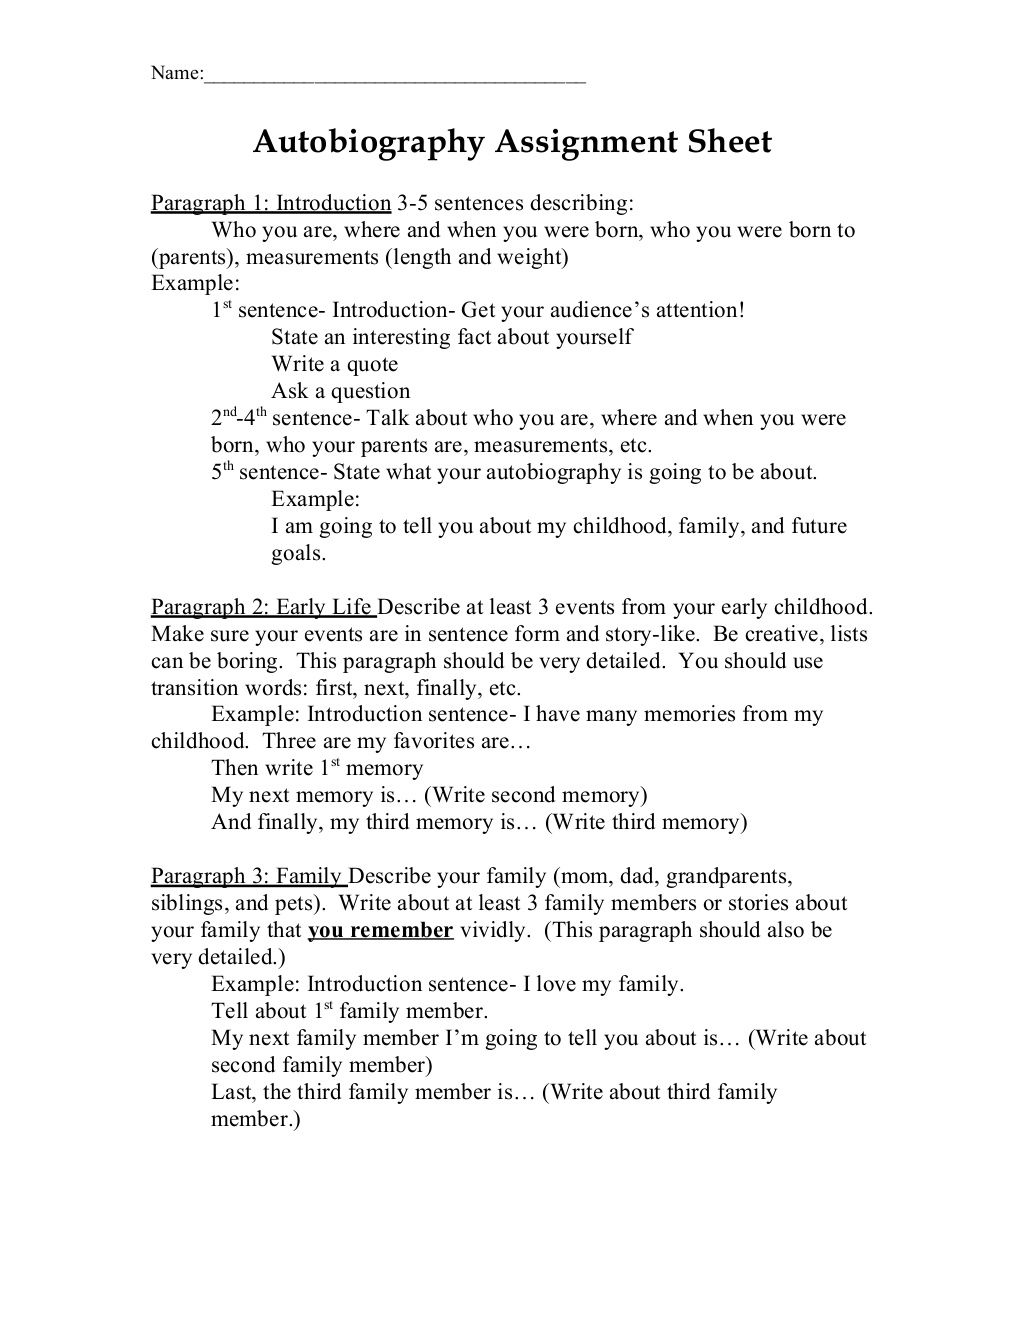 How to write an introduction to a memoir pay for my u.s. history and government annotated bibliography